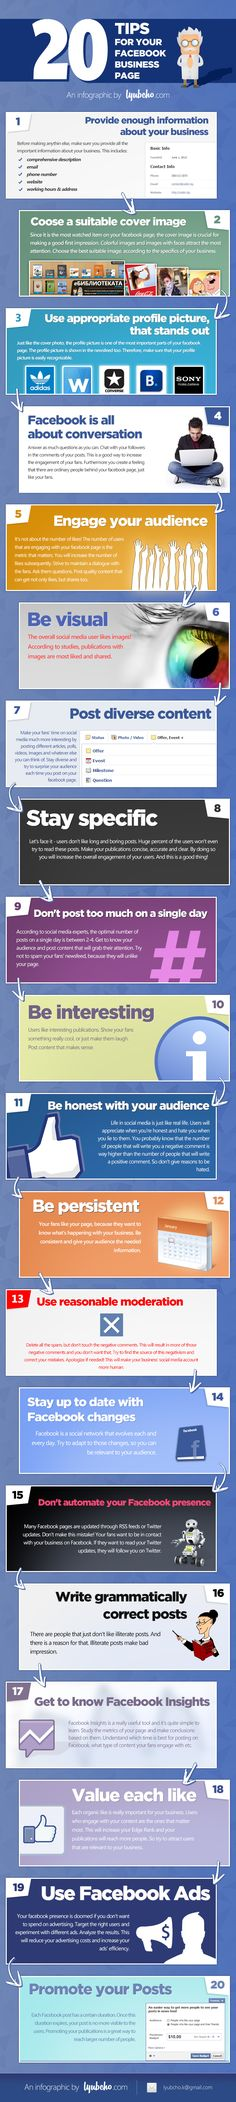 20 Tips for Your #Facebook Business Page